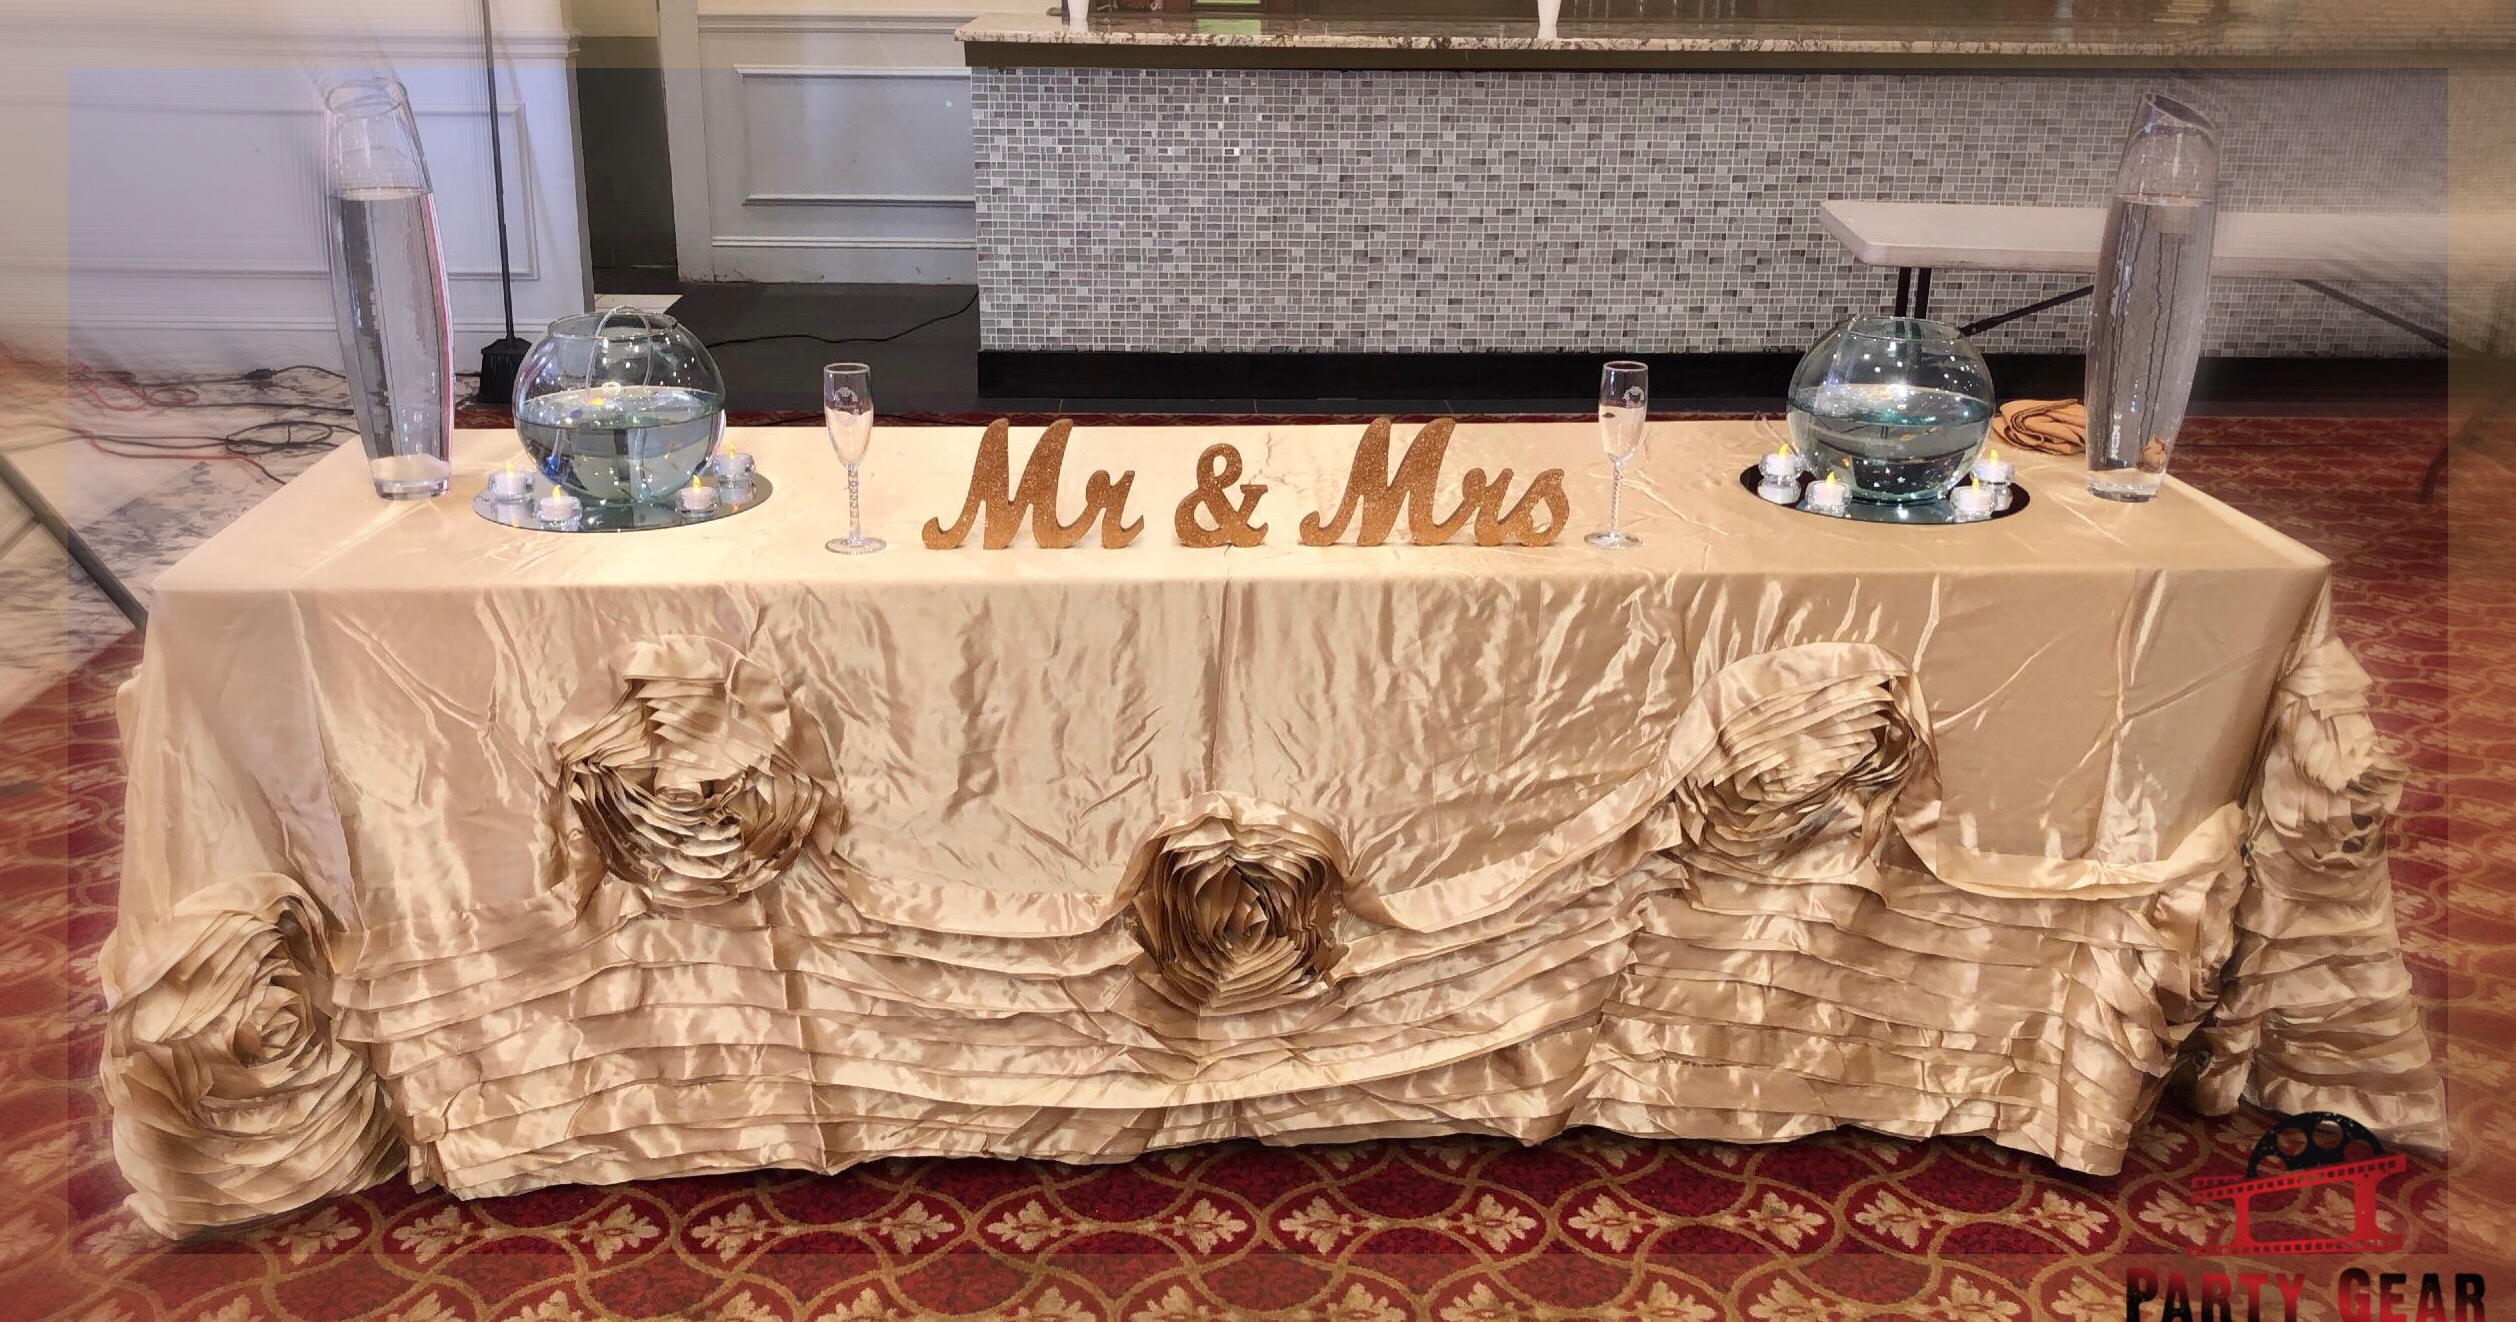 Party Gear banquet hall decoration mr & mrs sign and nice table cover